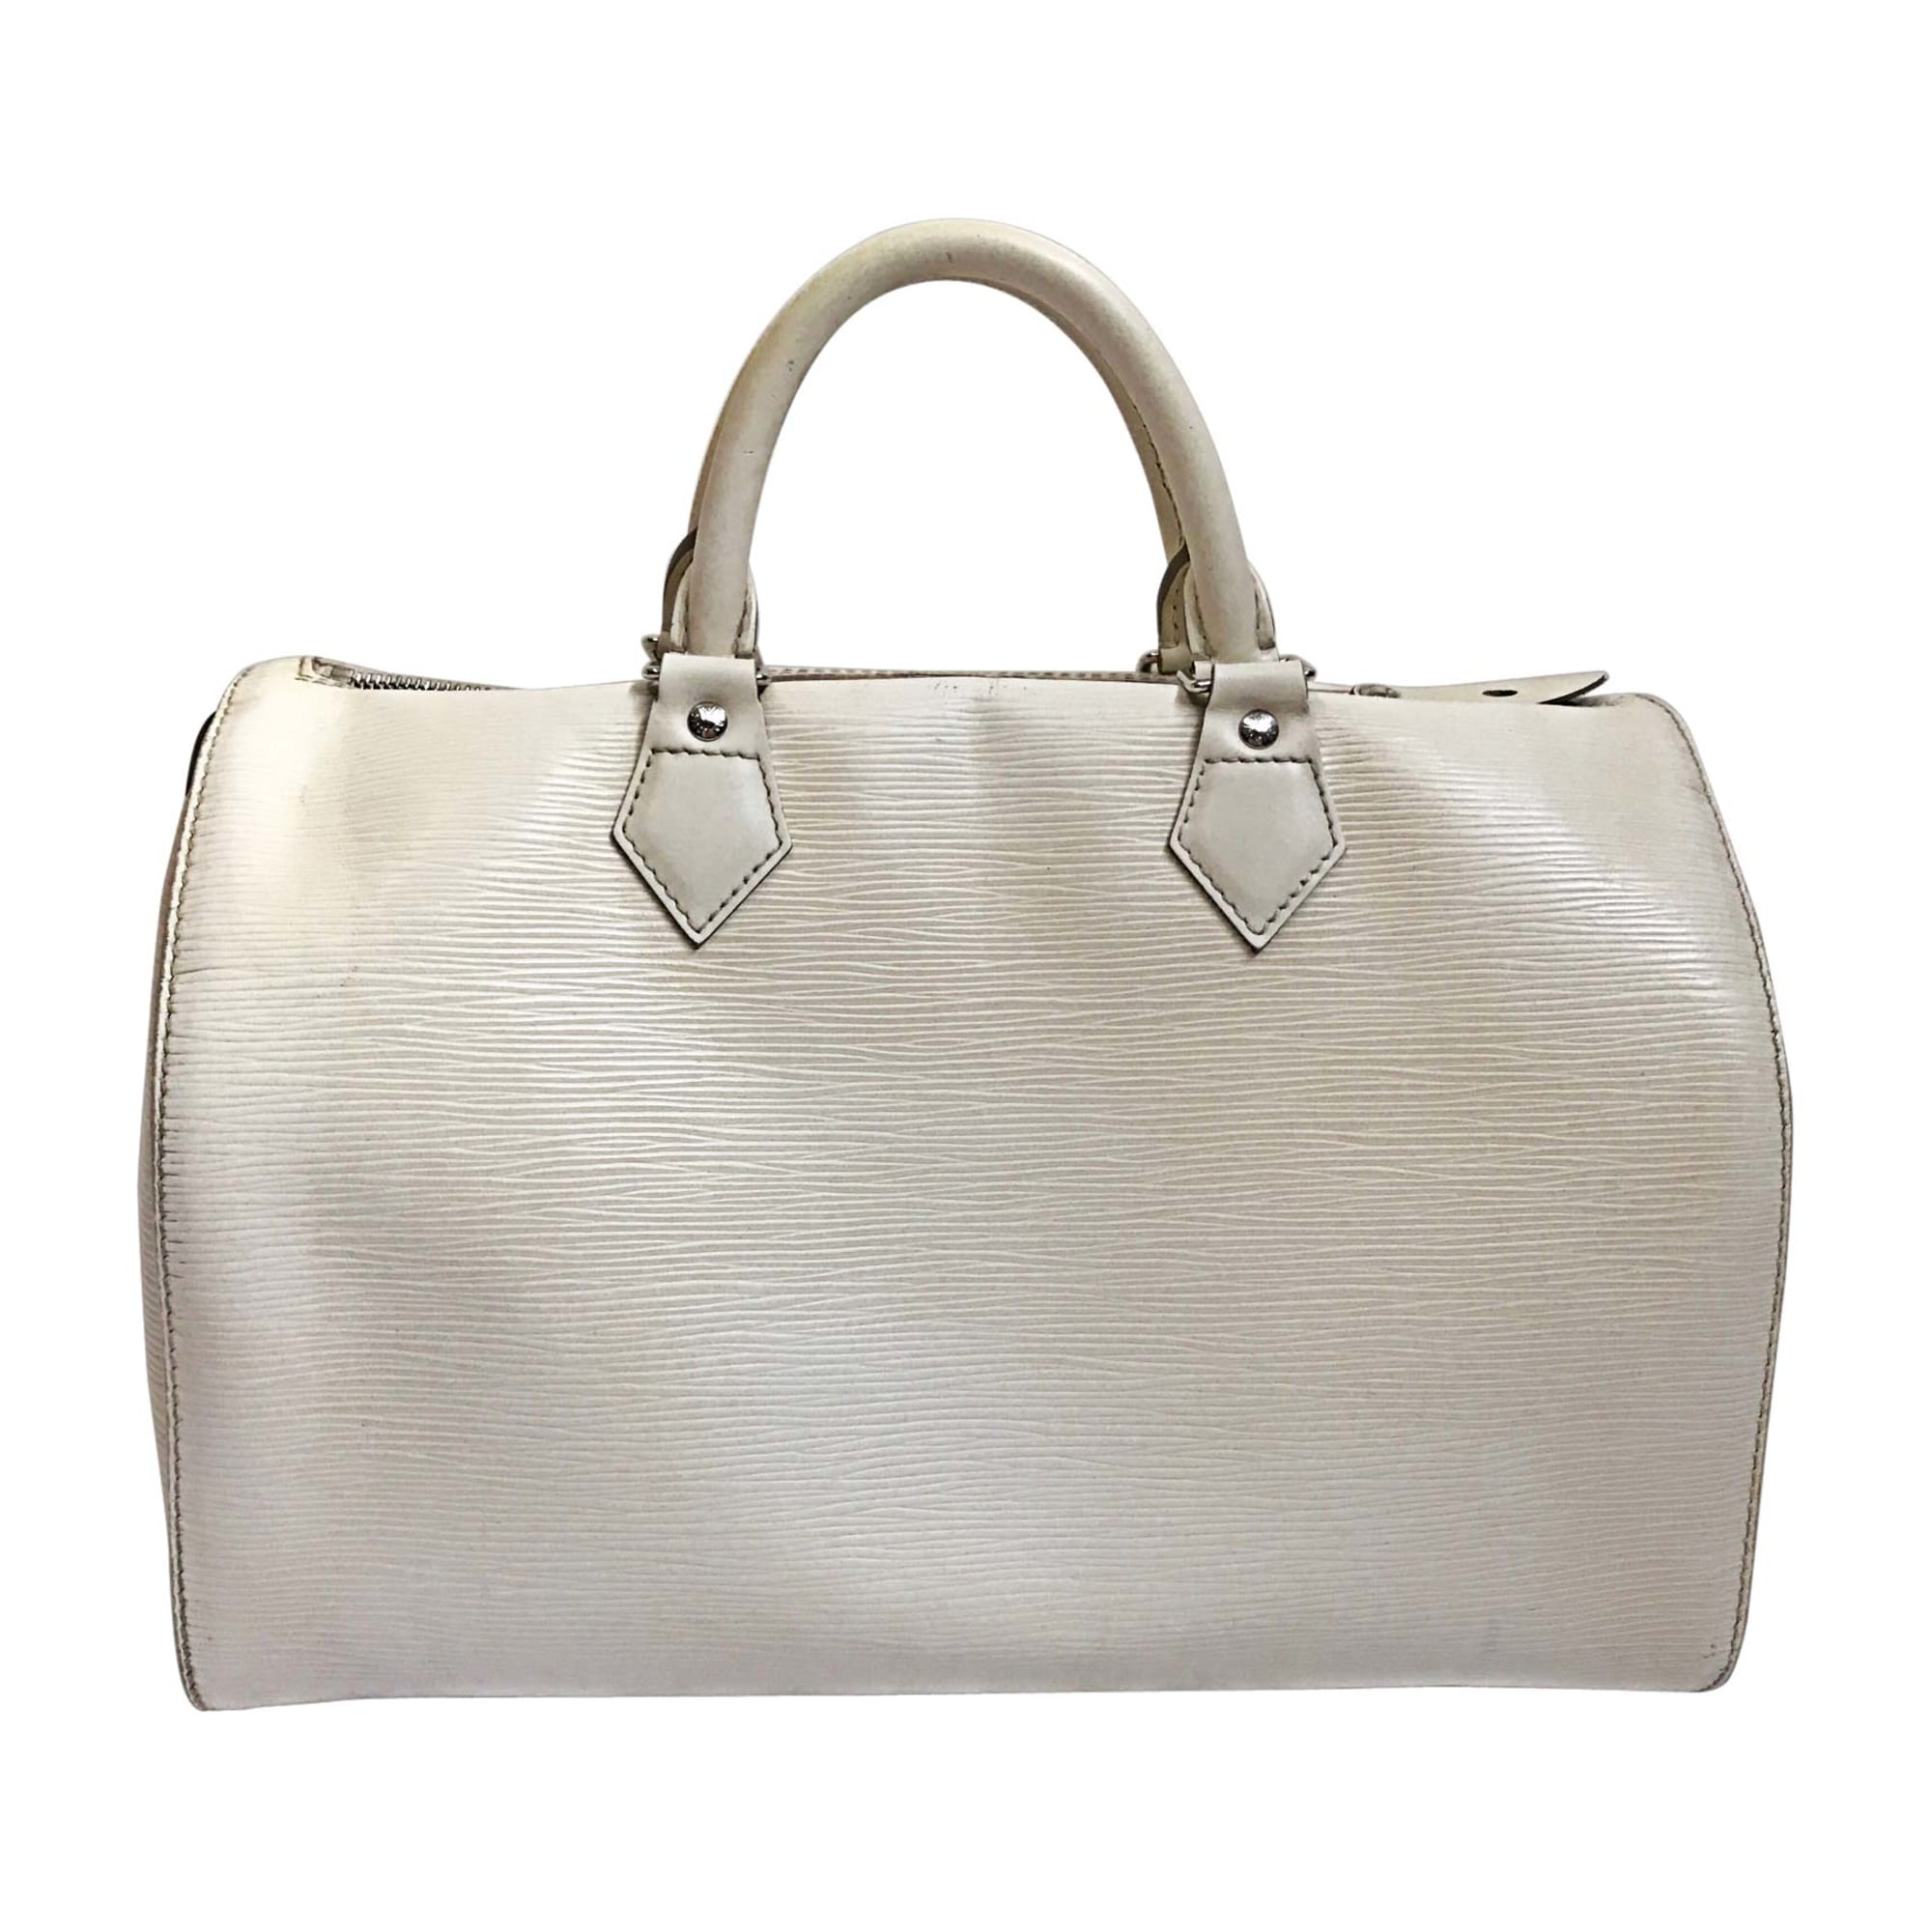 cd8a919e48 Sac Louis Vuitton Speedy 35 Blanc | Stanford Center for Opportunity ...